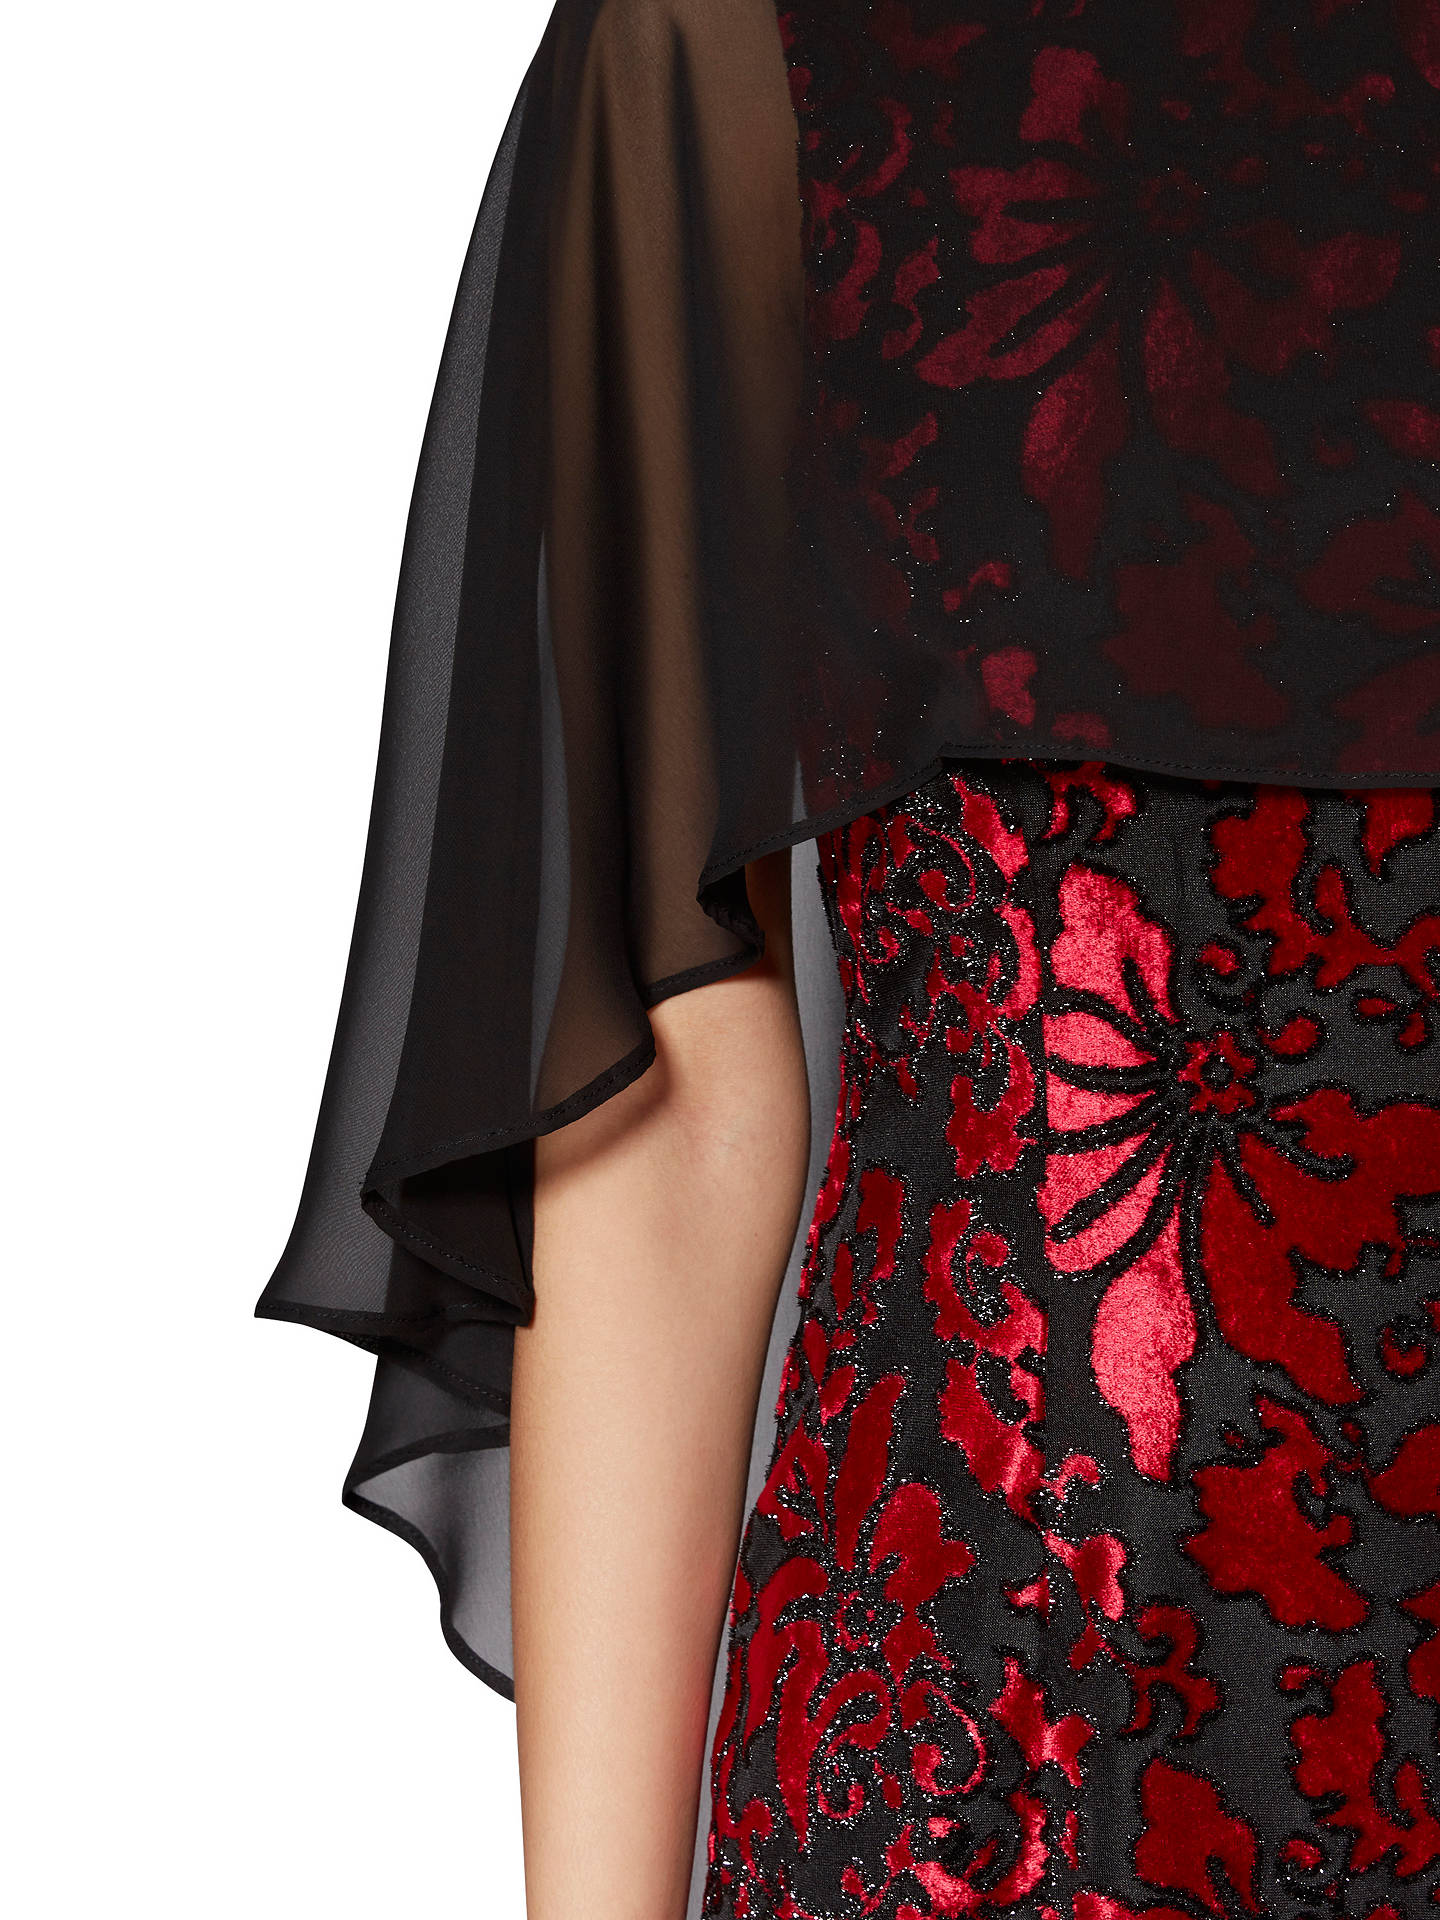 BuyGina Bacconi Lottie Floral Velvet Cape Dress, Black/Ruby, 8 Online at johnlewis.com